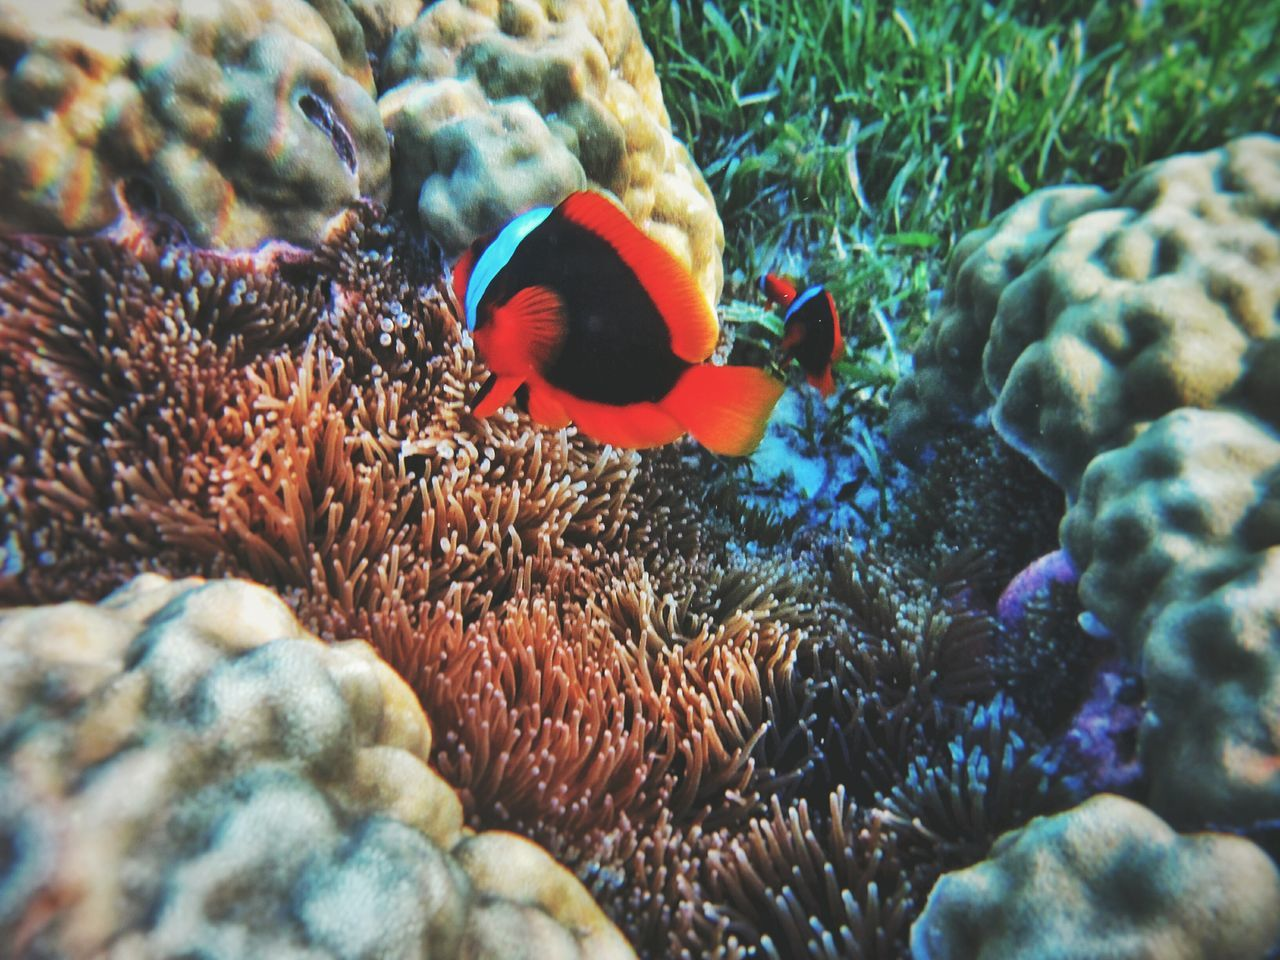 sea life, underwater, animal themes, undersea, animals in the wild, coral, one animal, sea, nature, animal wildlife, no people, water, close-up, clown fish, beauty in nature, day, swimming, sea anemone, outdoors